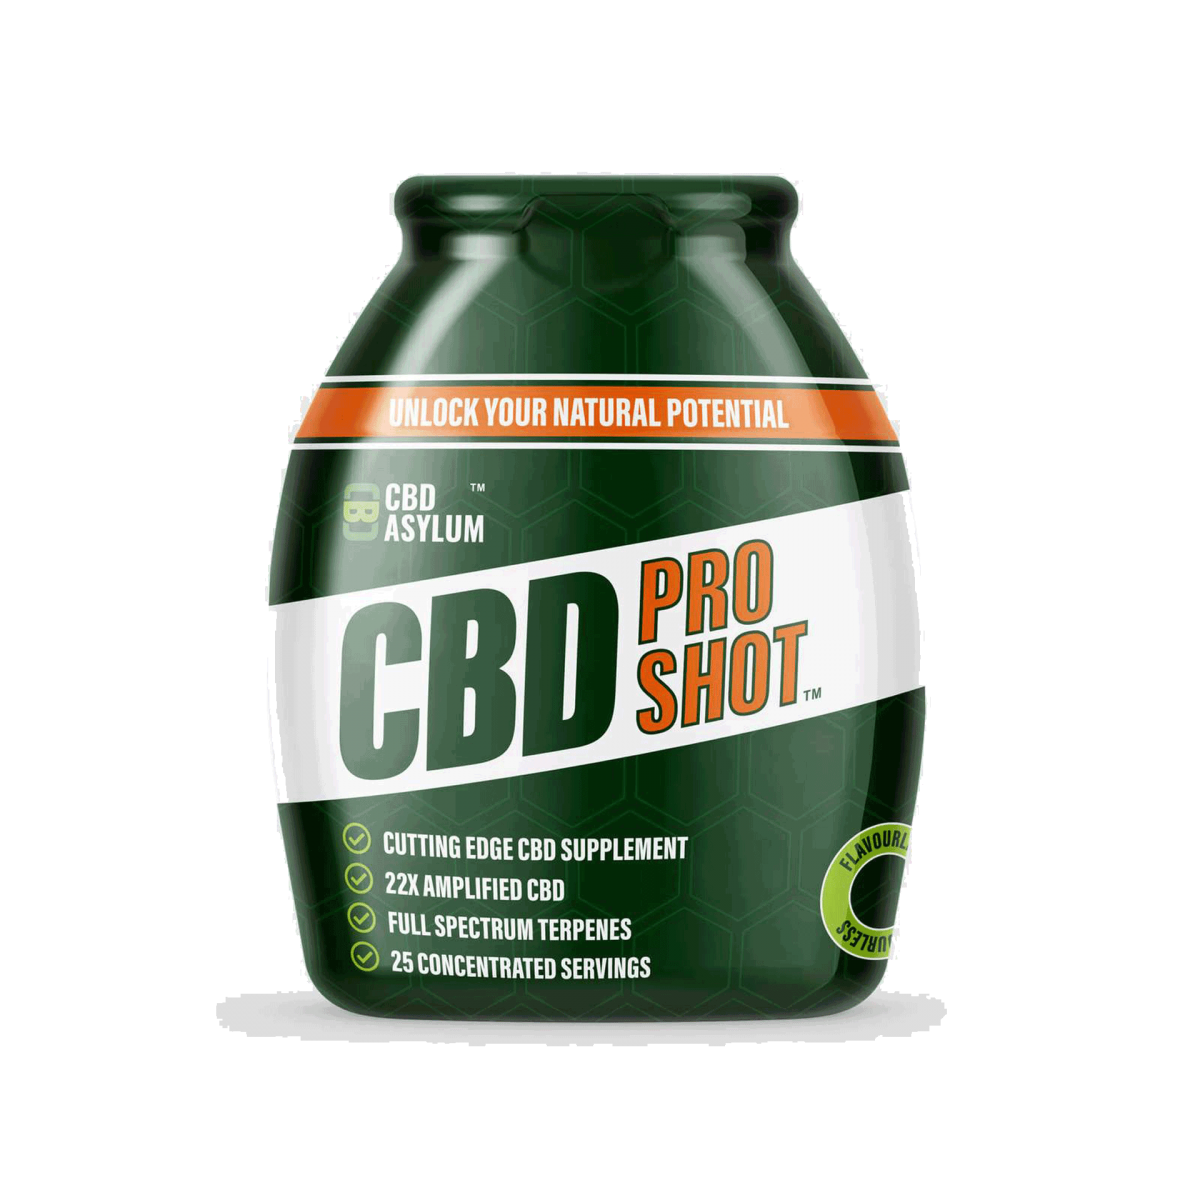 CBD Asylum Pro shot – Eatonslater.com Health food & online health store